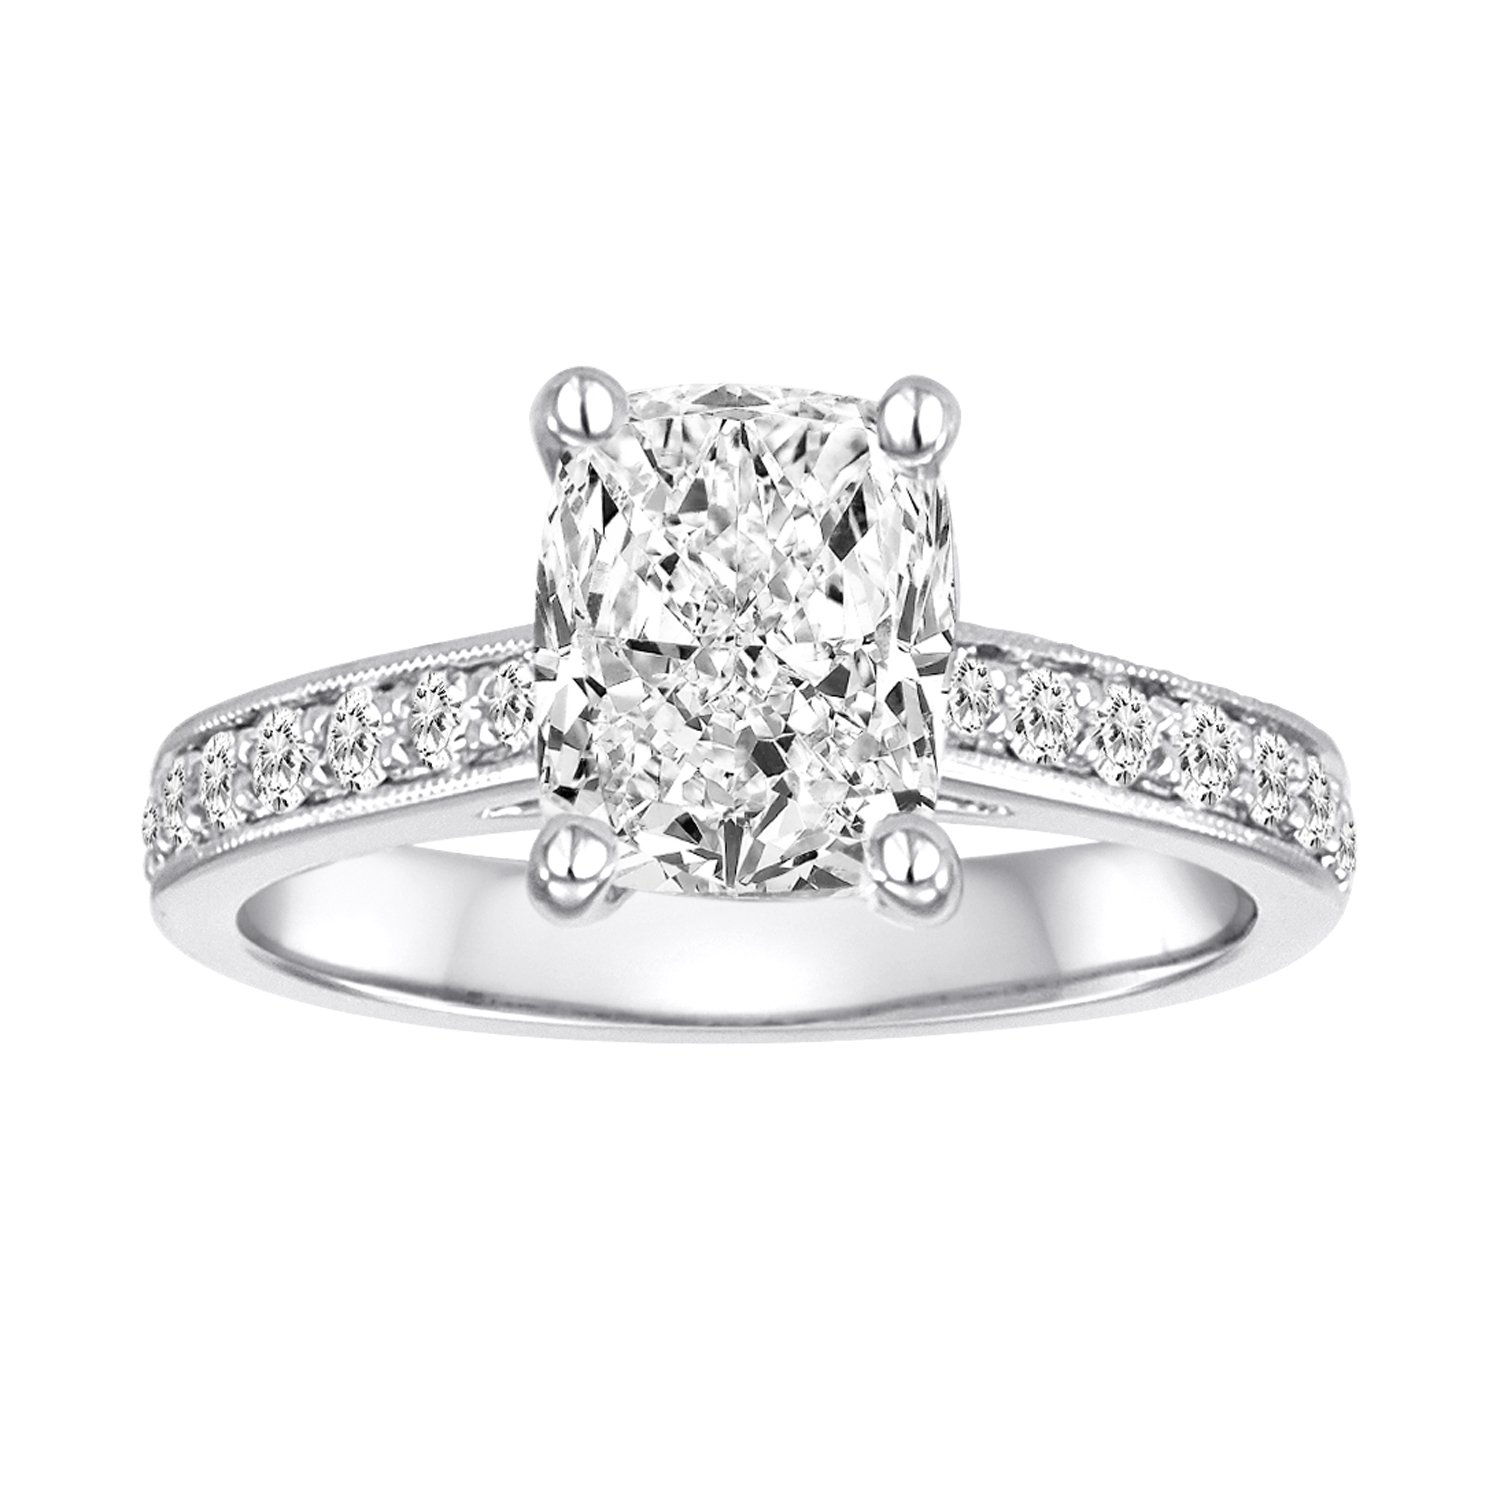 Custom Diamond Engagement Rings Wholesale Prices